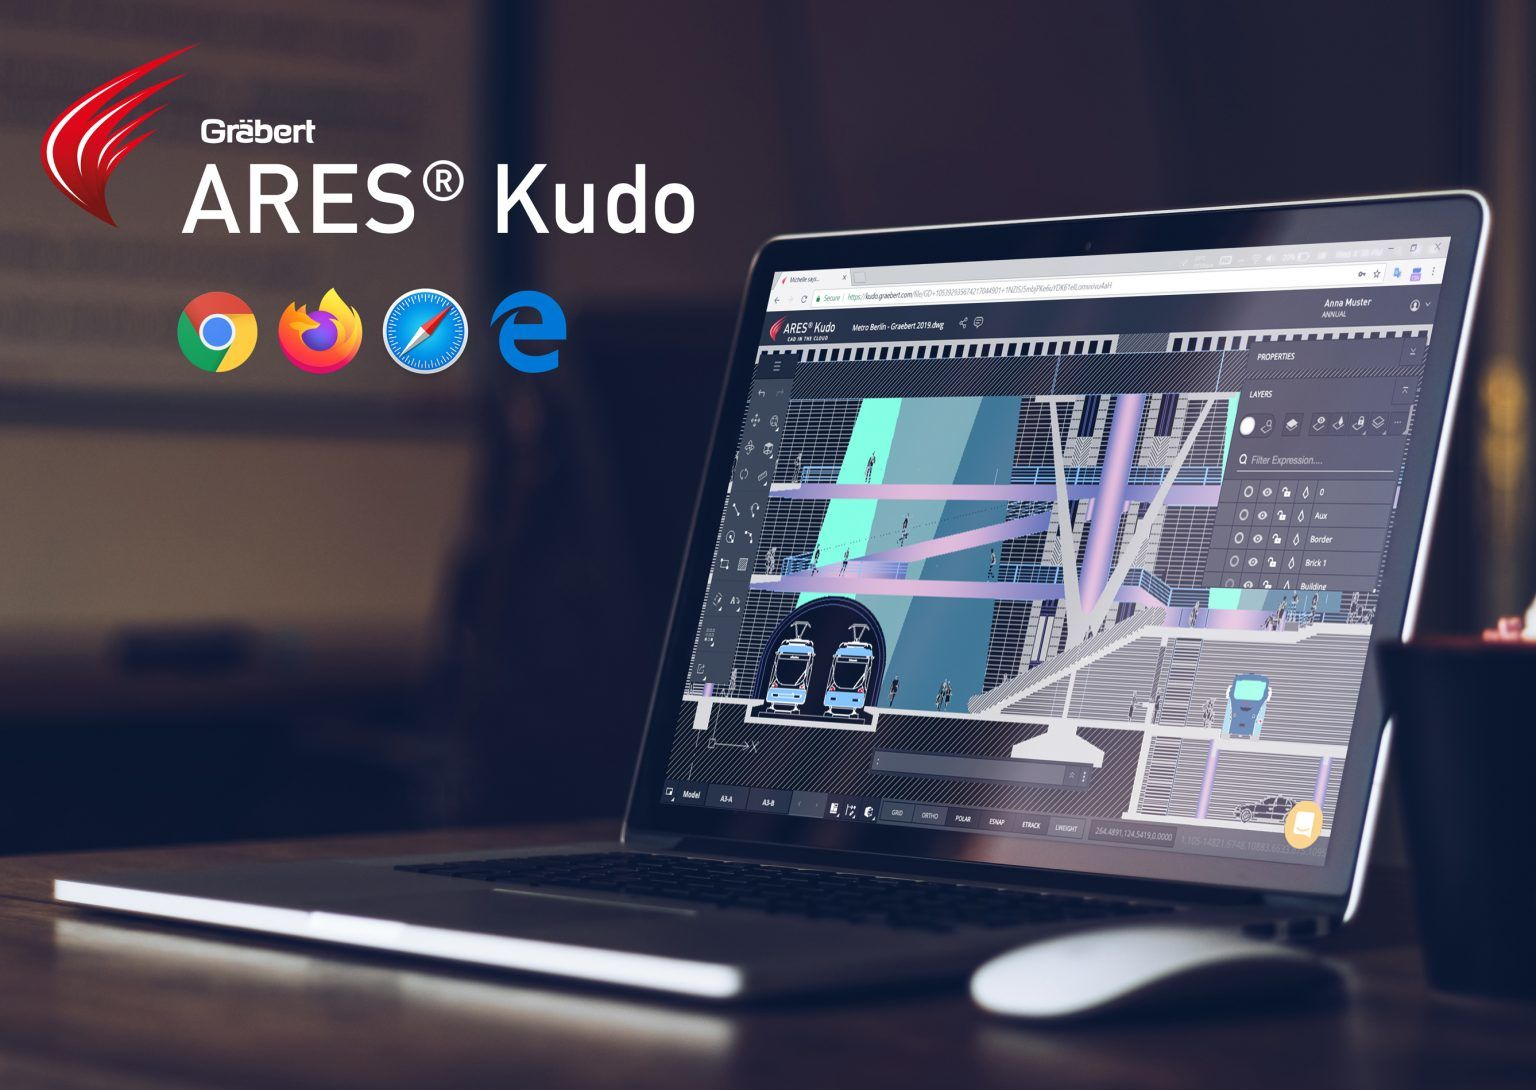 ARES Kudo is ideal to create or modify DWG drawings in home office.